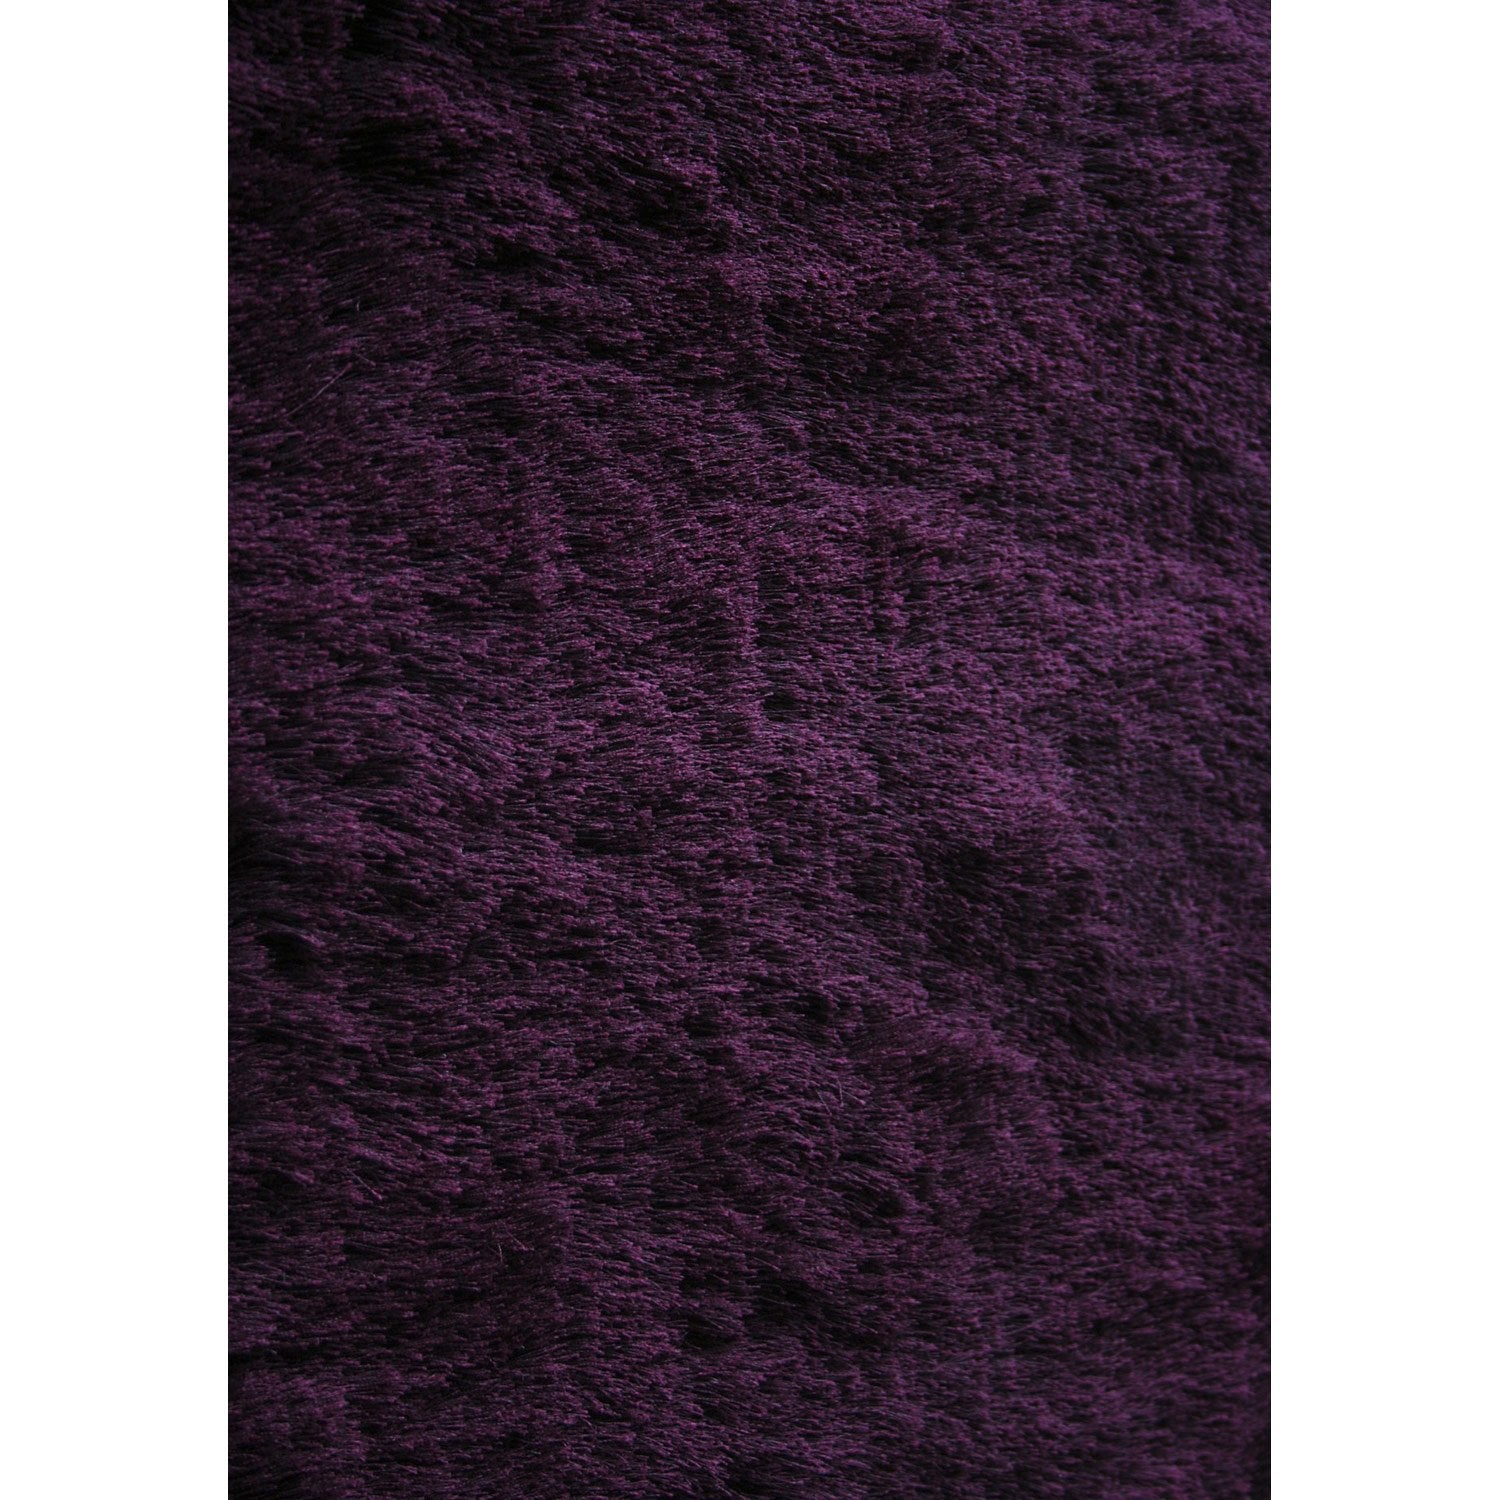 tapis shaggy zelia fuchsia 170x120 cm leroy merlin. Black Bedroom Furniture Sets. Home Design Ideas